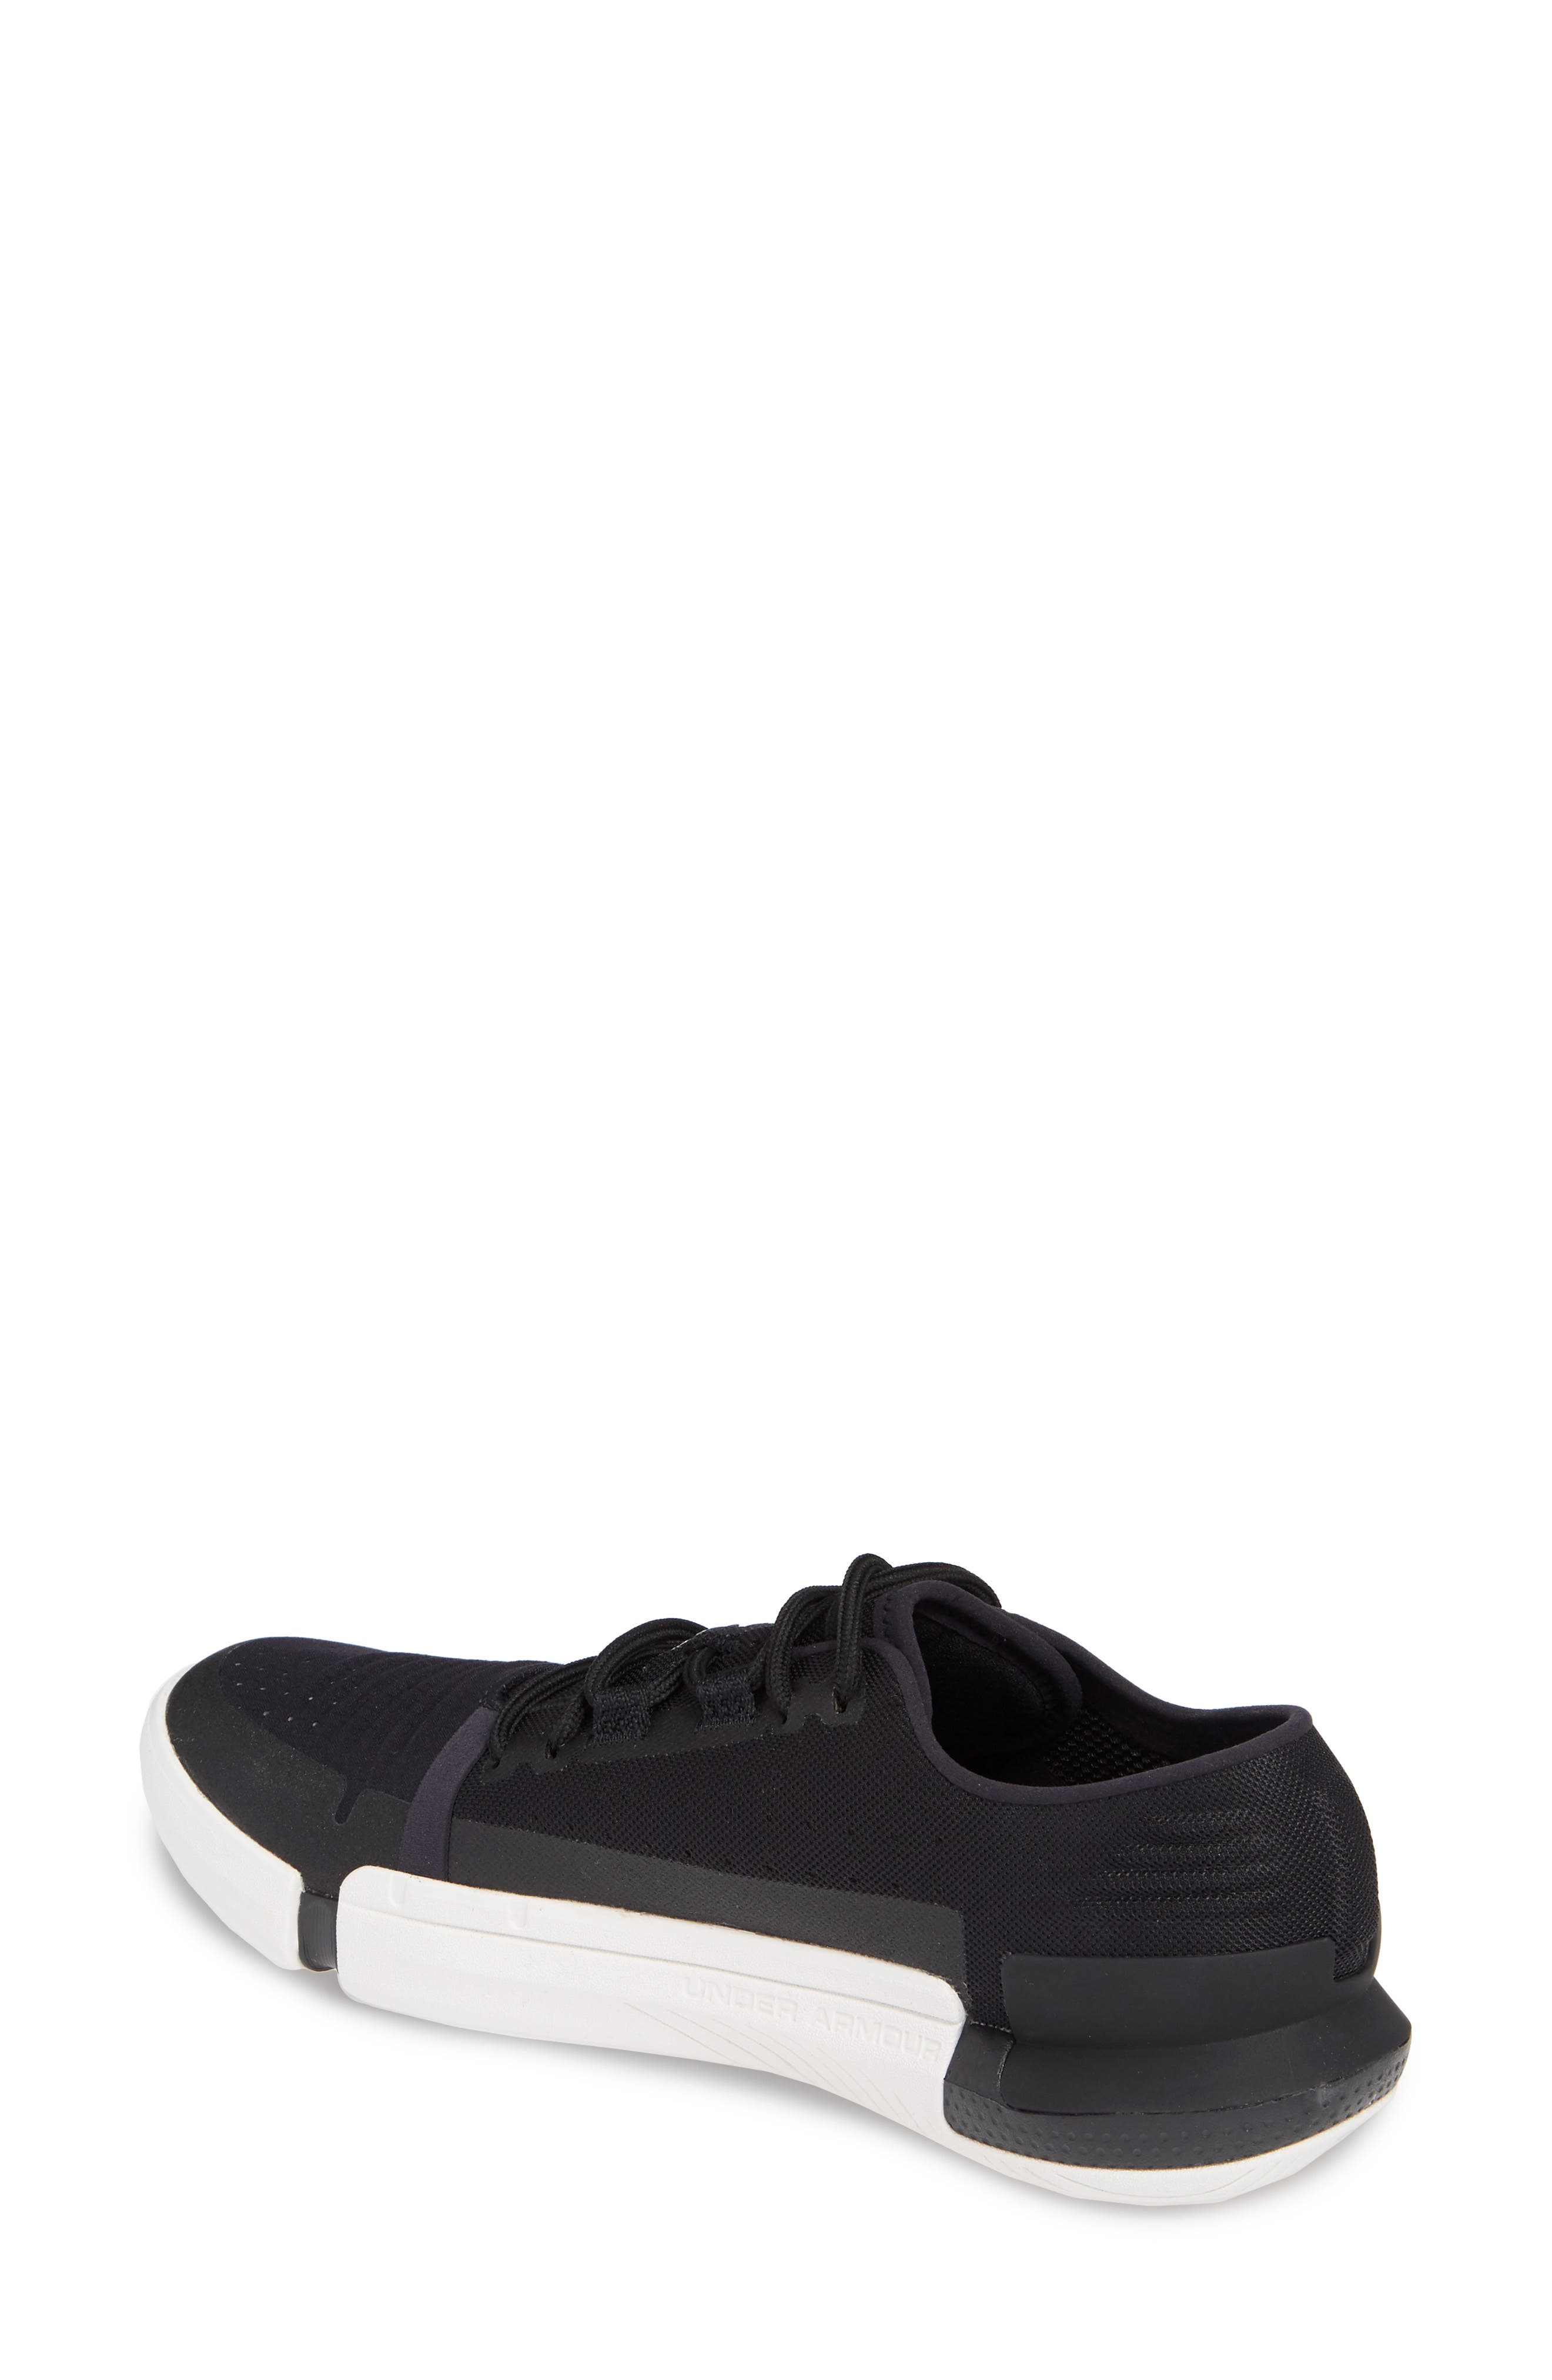 competitive price 08476 58eee Women s Training Shoes   Nordstrom